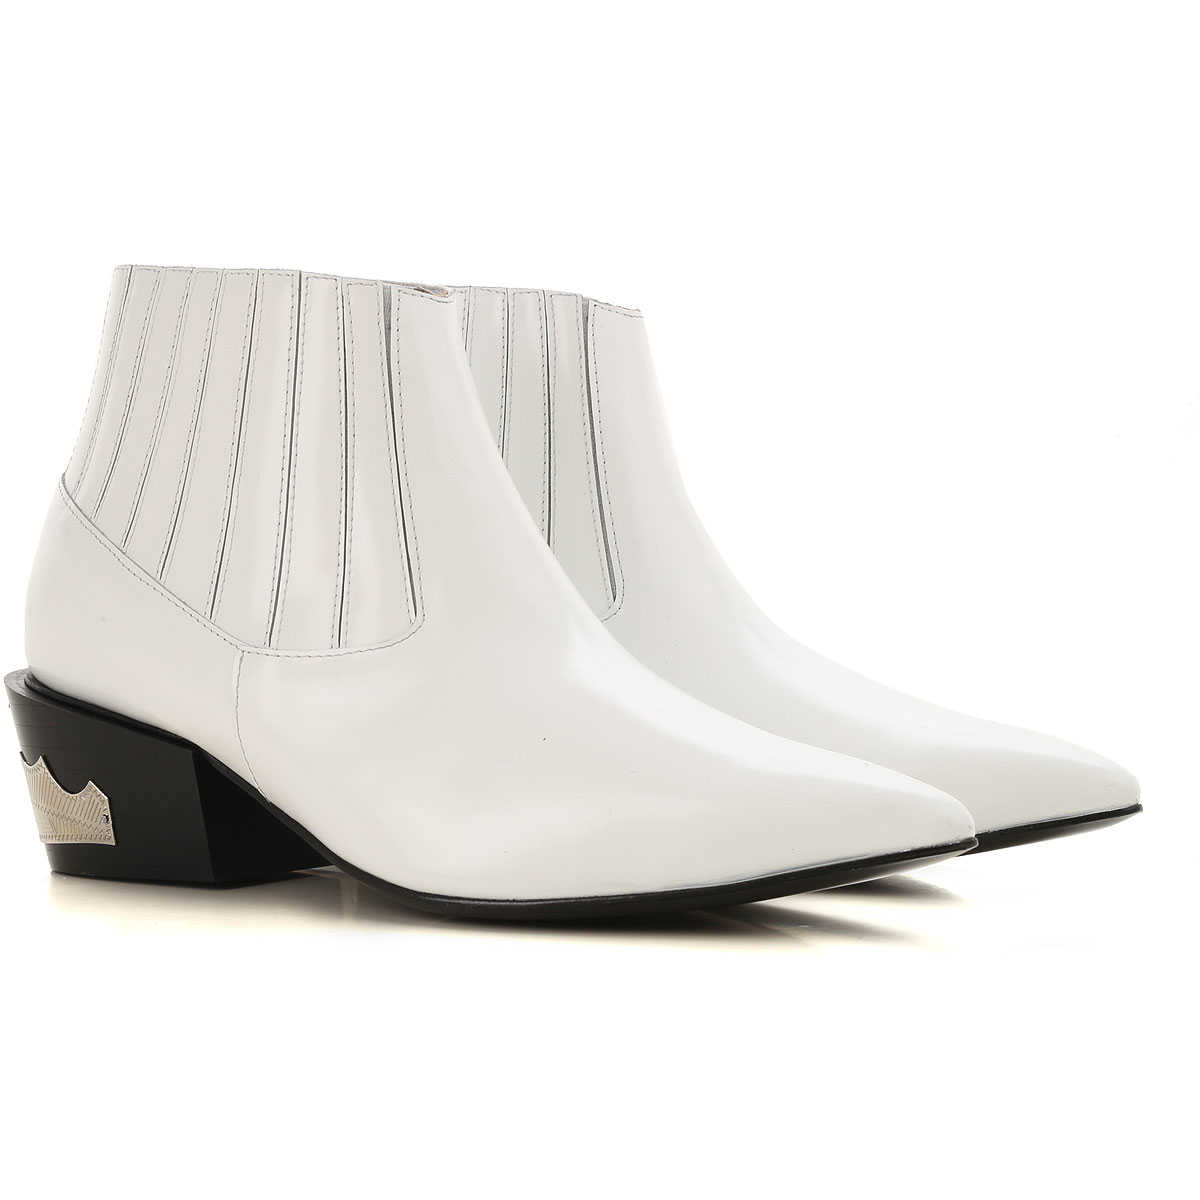 Toga Pulla Boots for Women Booties On Sale SE - GOOFASH